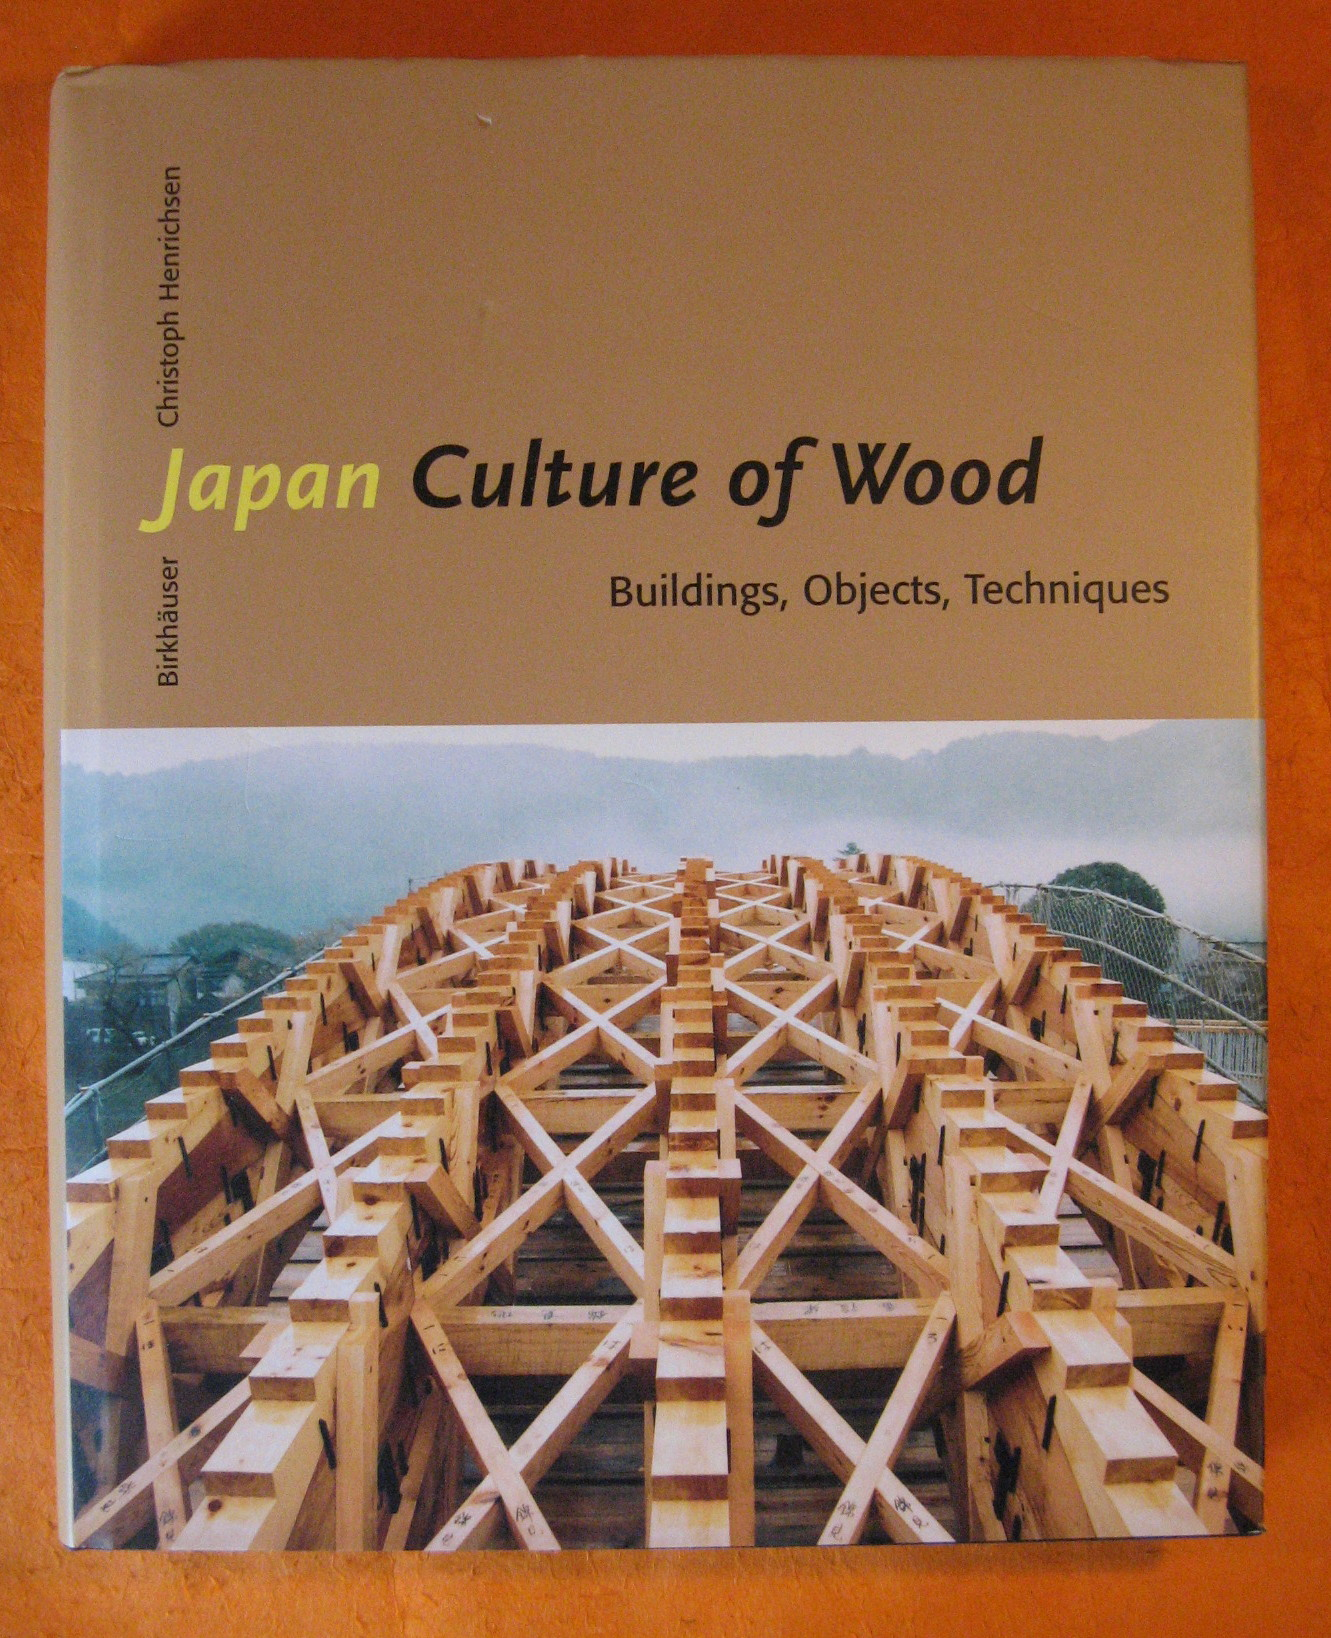 Japan Culture of Wood: Buildings, Objects,Techniques, Henrichsen, Christoph